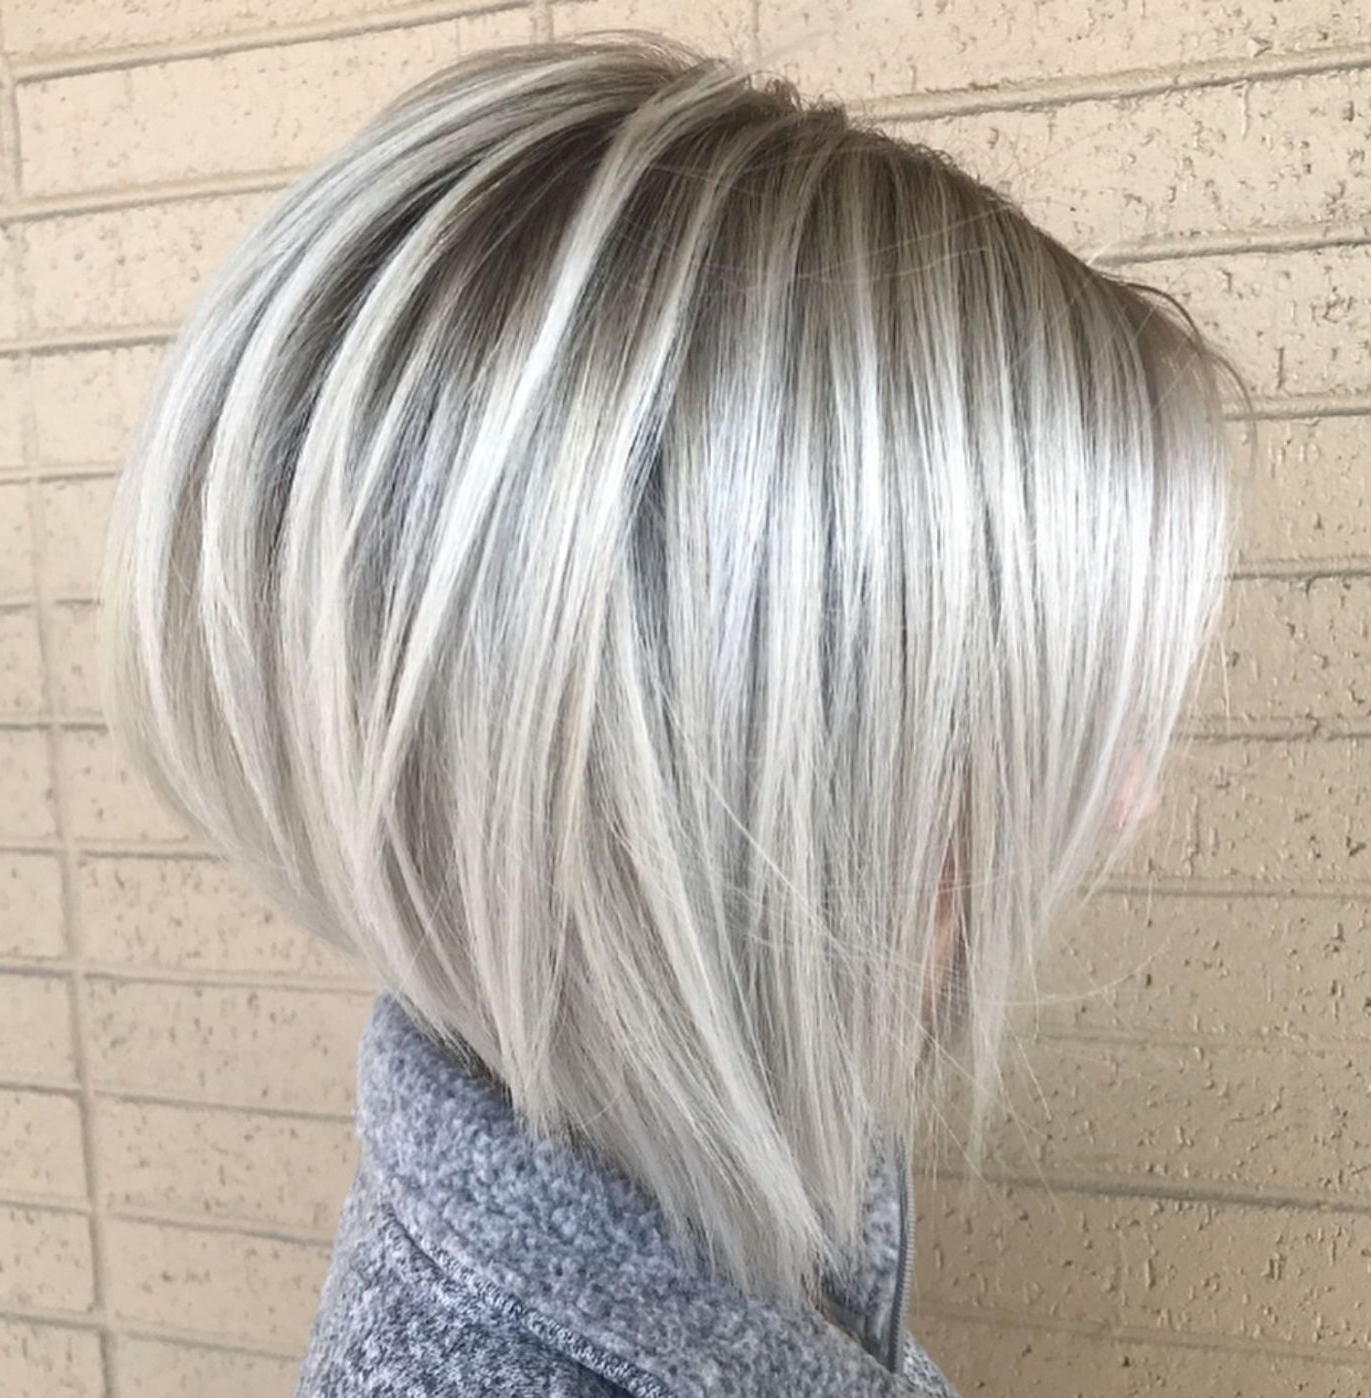 100 Mind Blowing Short Hairstyles For Fine Hair | Hair In Throughout Silver Short Bob Haircuts (View 5 of 20)